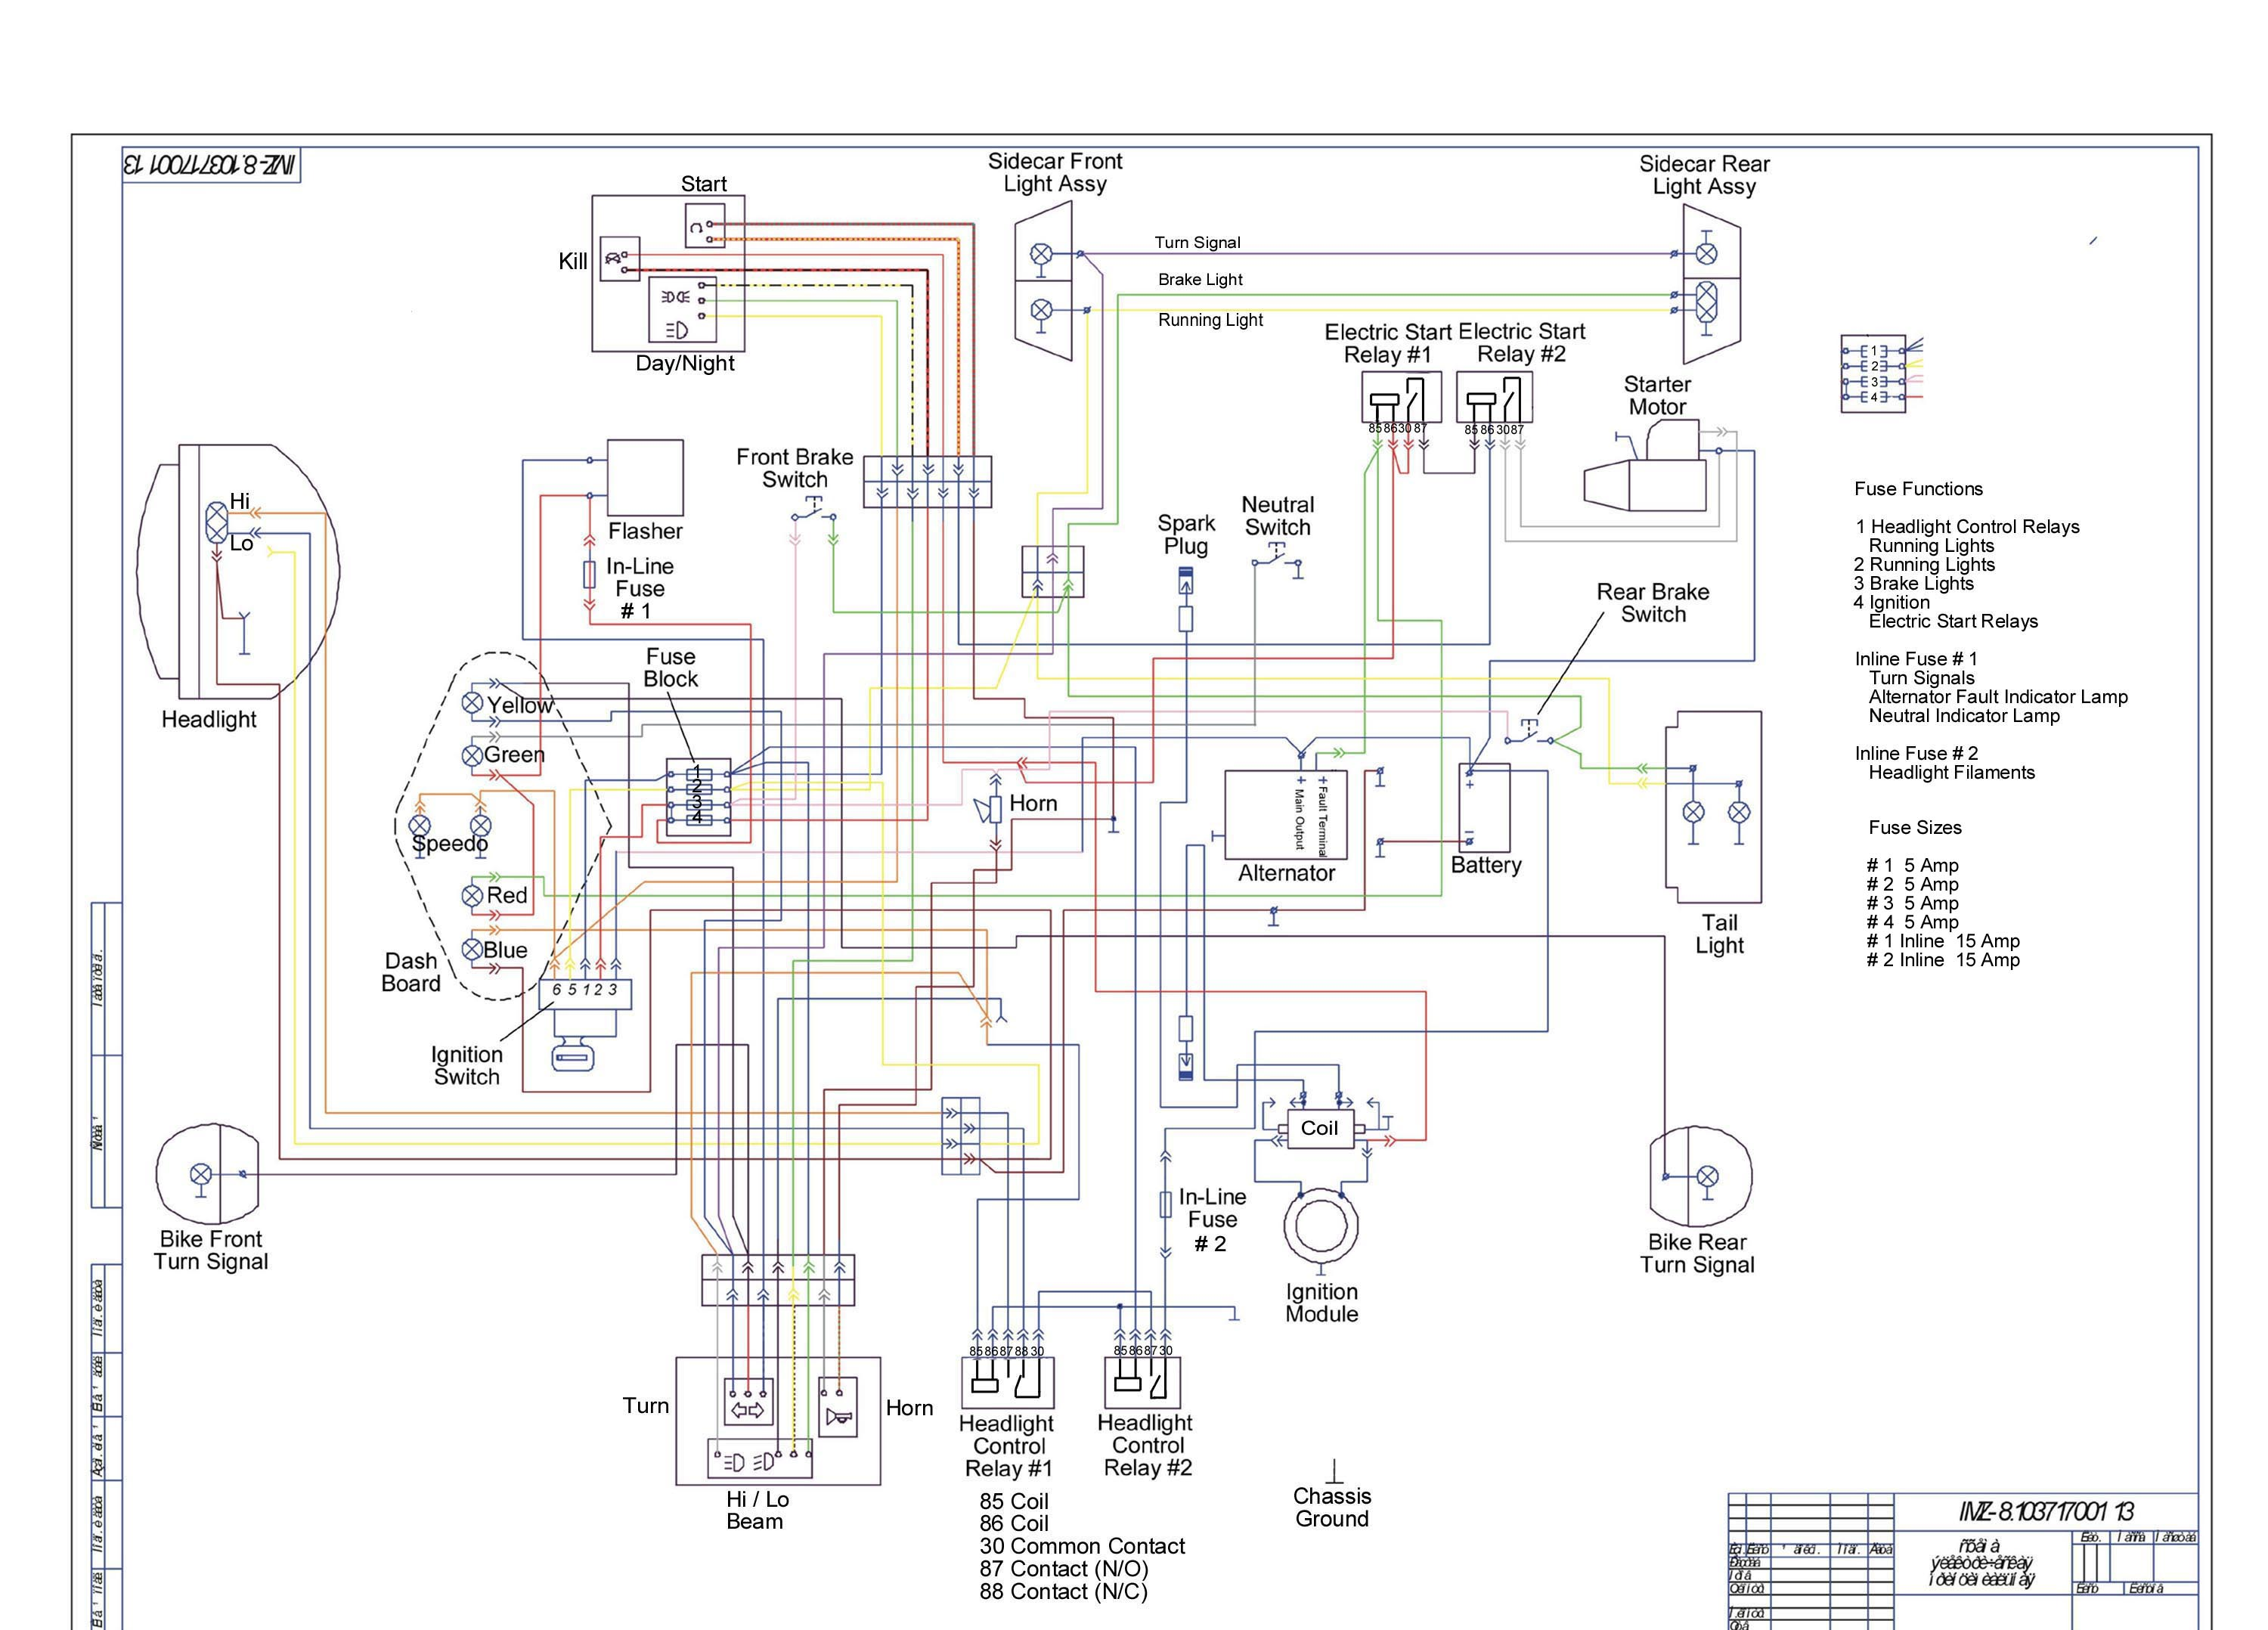 Wonderful 2005 Ford Freestar Spark Plug Wire Diagram Pictures ... on 2004 ford sport trac wiring diagram, 2004 dodge grand caravan wiring diagram, 2004 ford thunderbird wiring diagram, 2009 ford mustang wiring diagram, 2004 ford f-250 wiring diagram, 2004 kia amanti wiring diagram, 2004 bmw x3 wiring diagram, 2010 ford mustang wiring diagram, 1995 ford crown victoria wiring diagram, 2006 ford freestar fuse diagram, 2004 mitsubishi galant wiring diagram, 2004 nissan armada wiring diagram, 2004 lincoln town car wiring diagram, 1995 ford aspire wiring diagram, 2003 ford excursion wiring diagram, 2006 ford crown victoria wiring diagram, 1997 ford crown victoria wiring diagram, 2014 ford f150 wiring diagram, 2004 toyota highlander wiring diagram, 2004 mercury grand marquis wiring diagram,